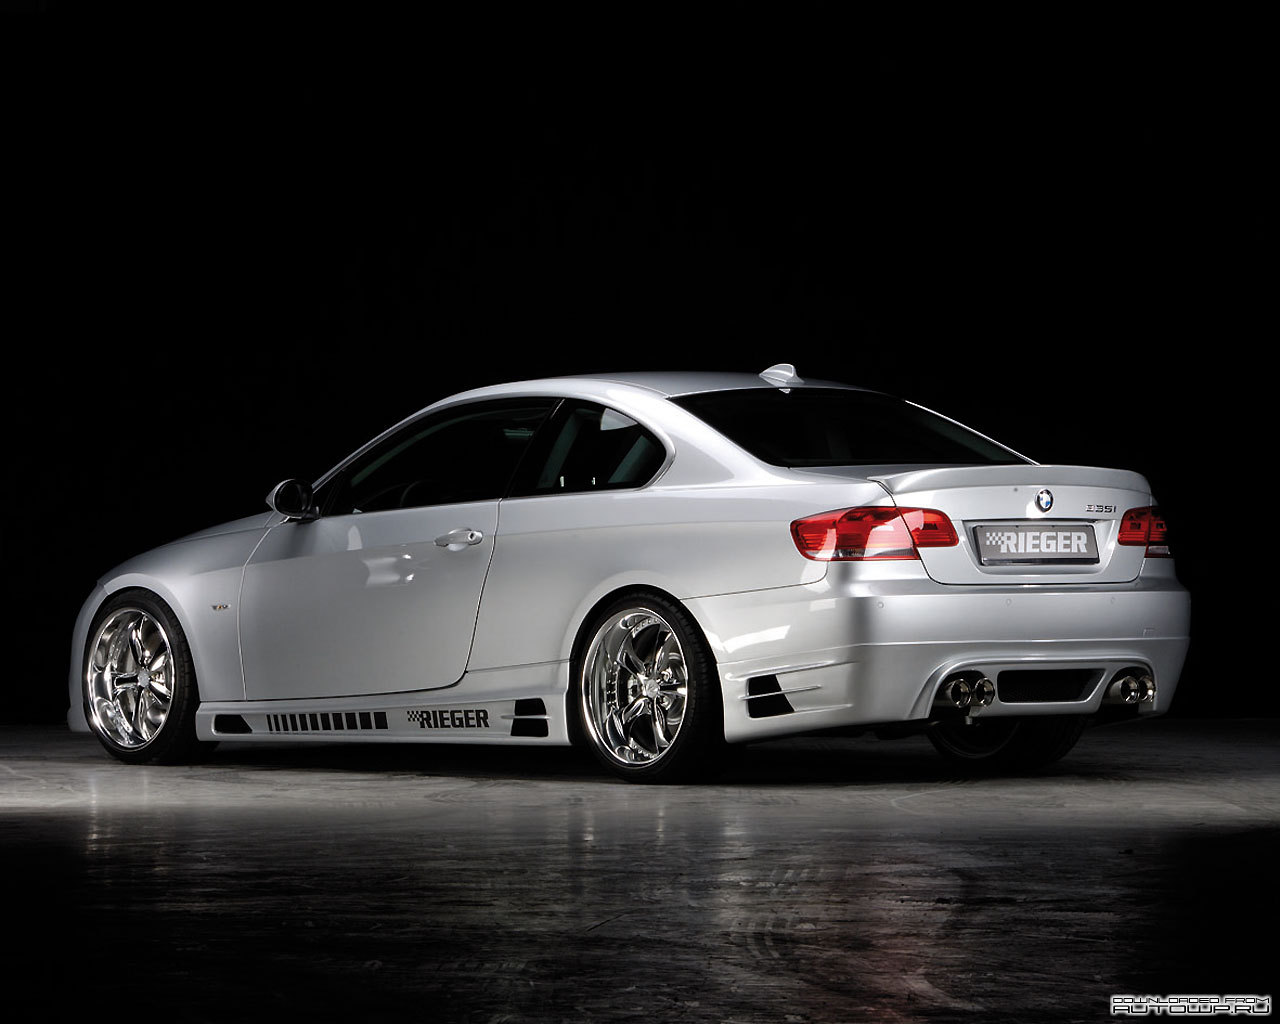 Rieger Bmw 3 Series Coupe E92 Picture 59147 Rieger Photo Gallery Carsbase Com